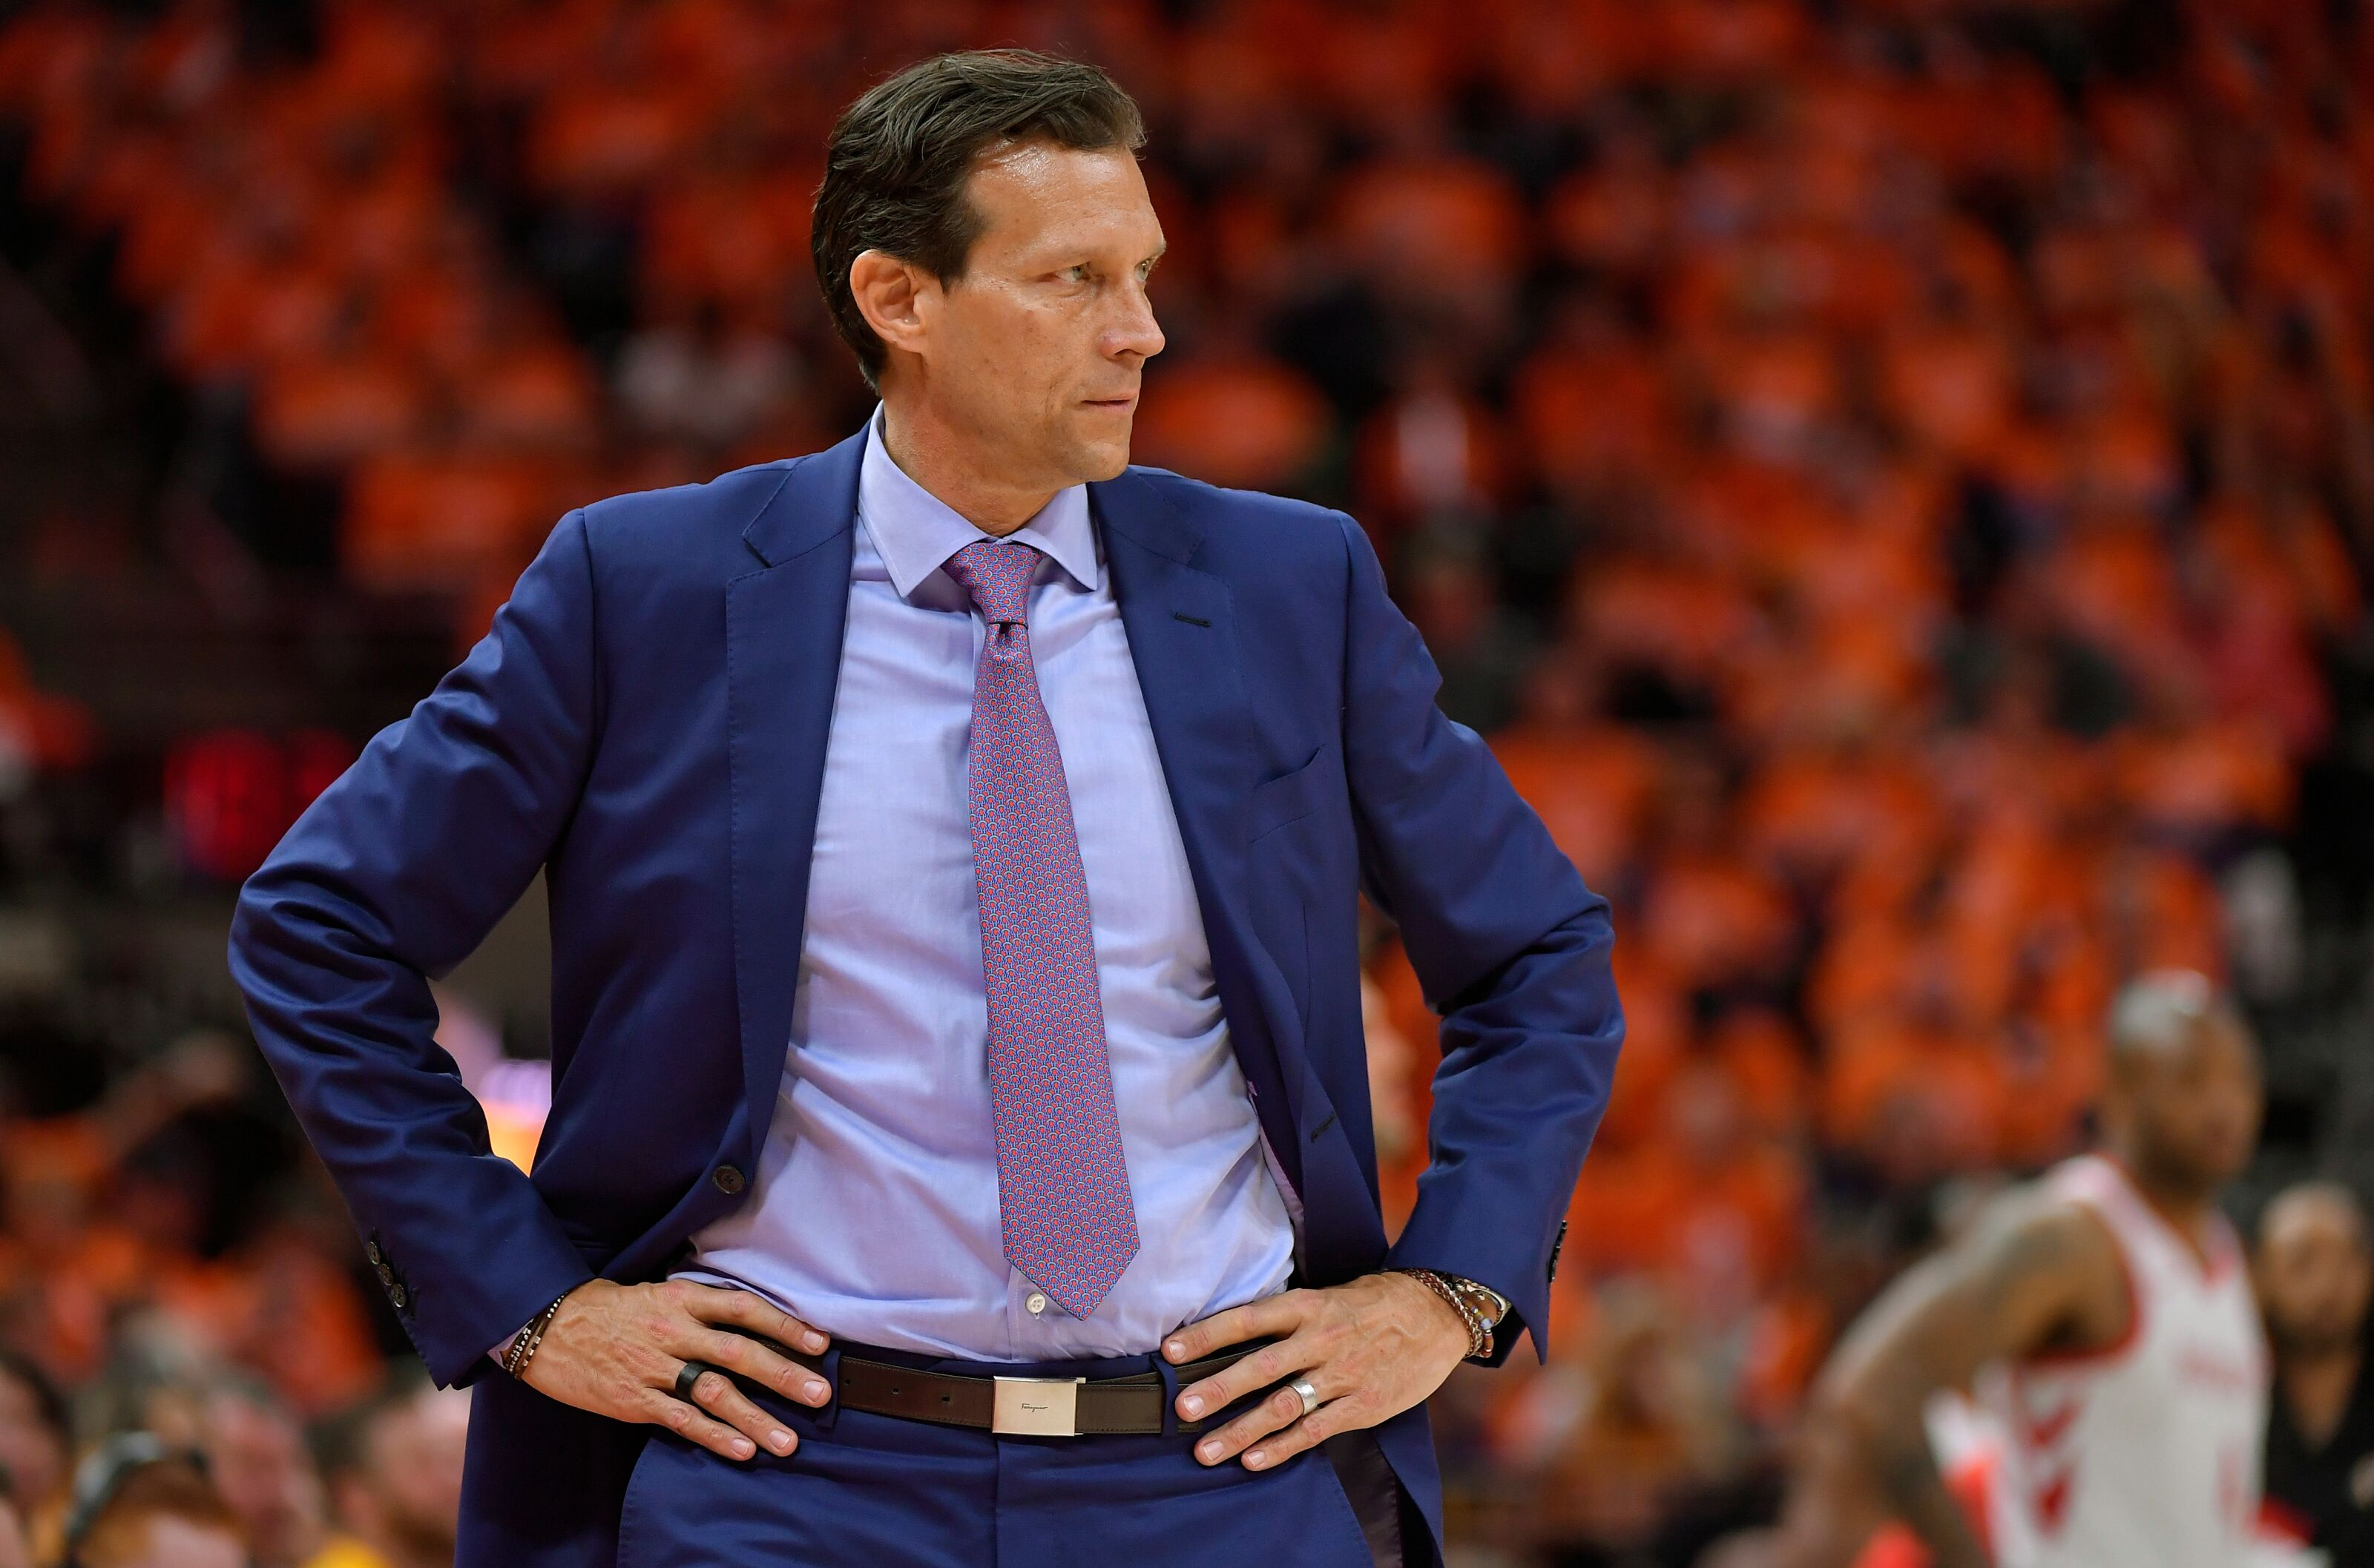 Utah Jazz: Can Quin Snyder win Coach of the Year next season?